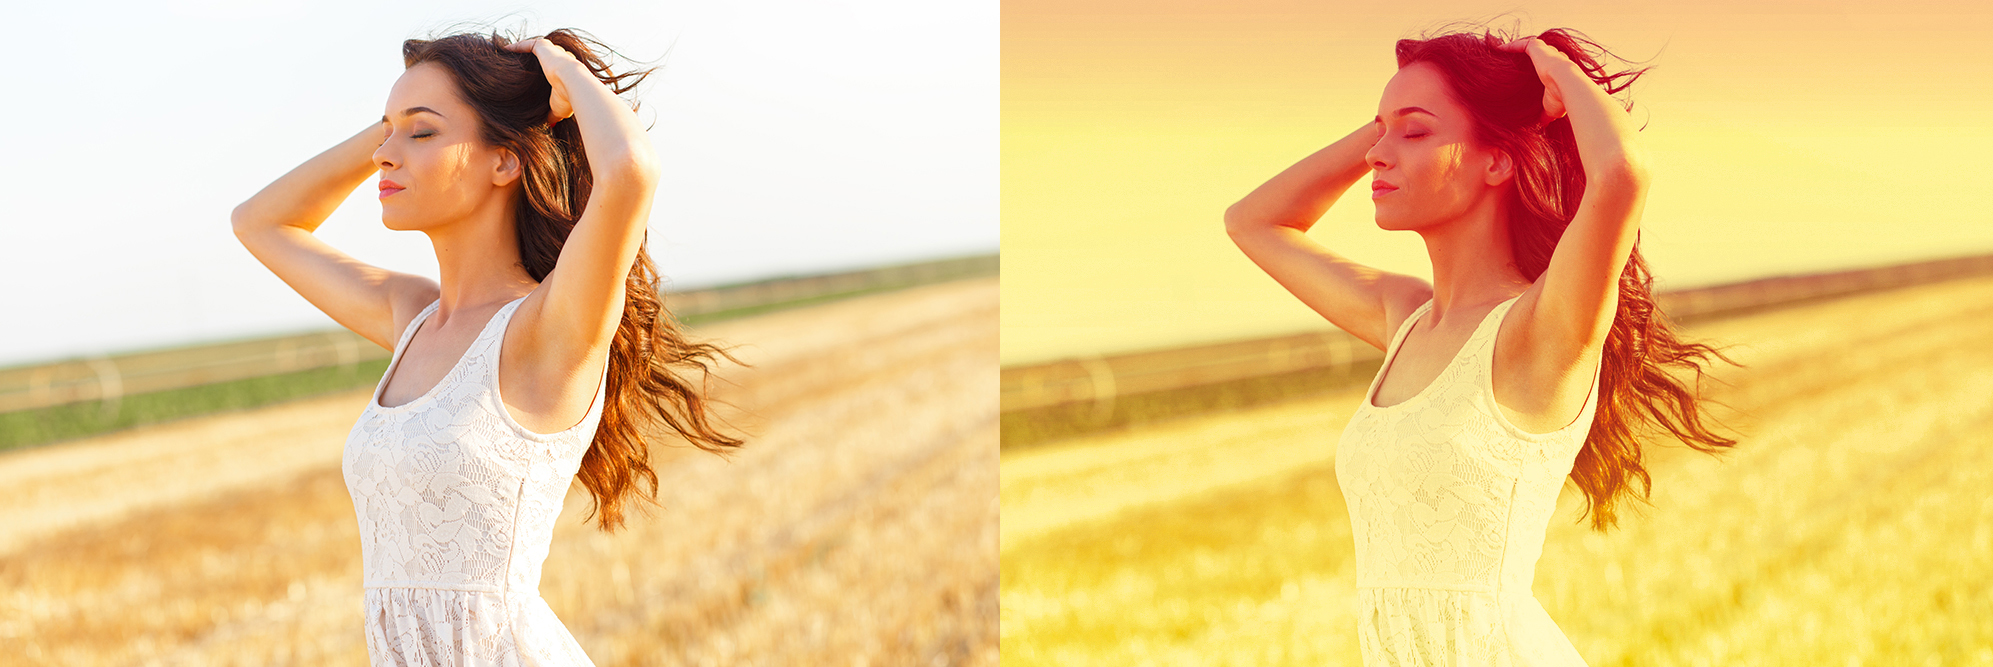 30 Summer Photoshop Actions Collection (Action for photoshop CS5,CS6,CC) example image 4